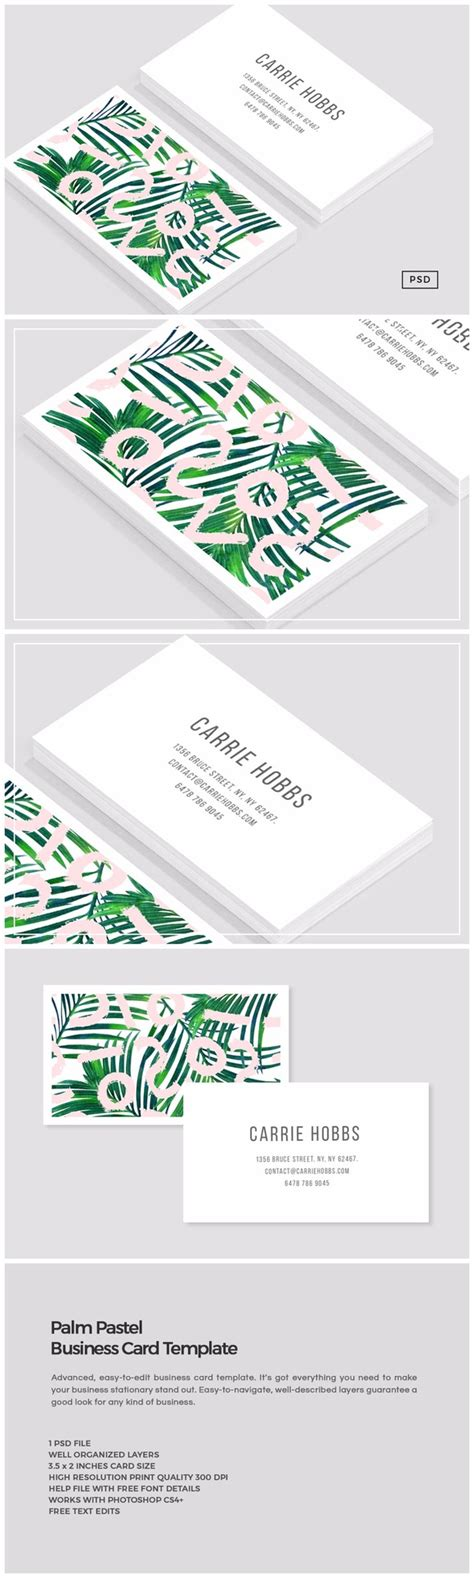 palm card template photoshop rapidshare pastel business card 187 designtube creative